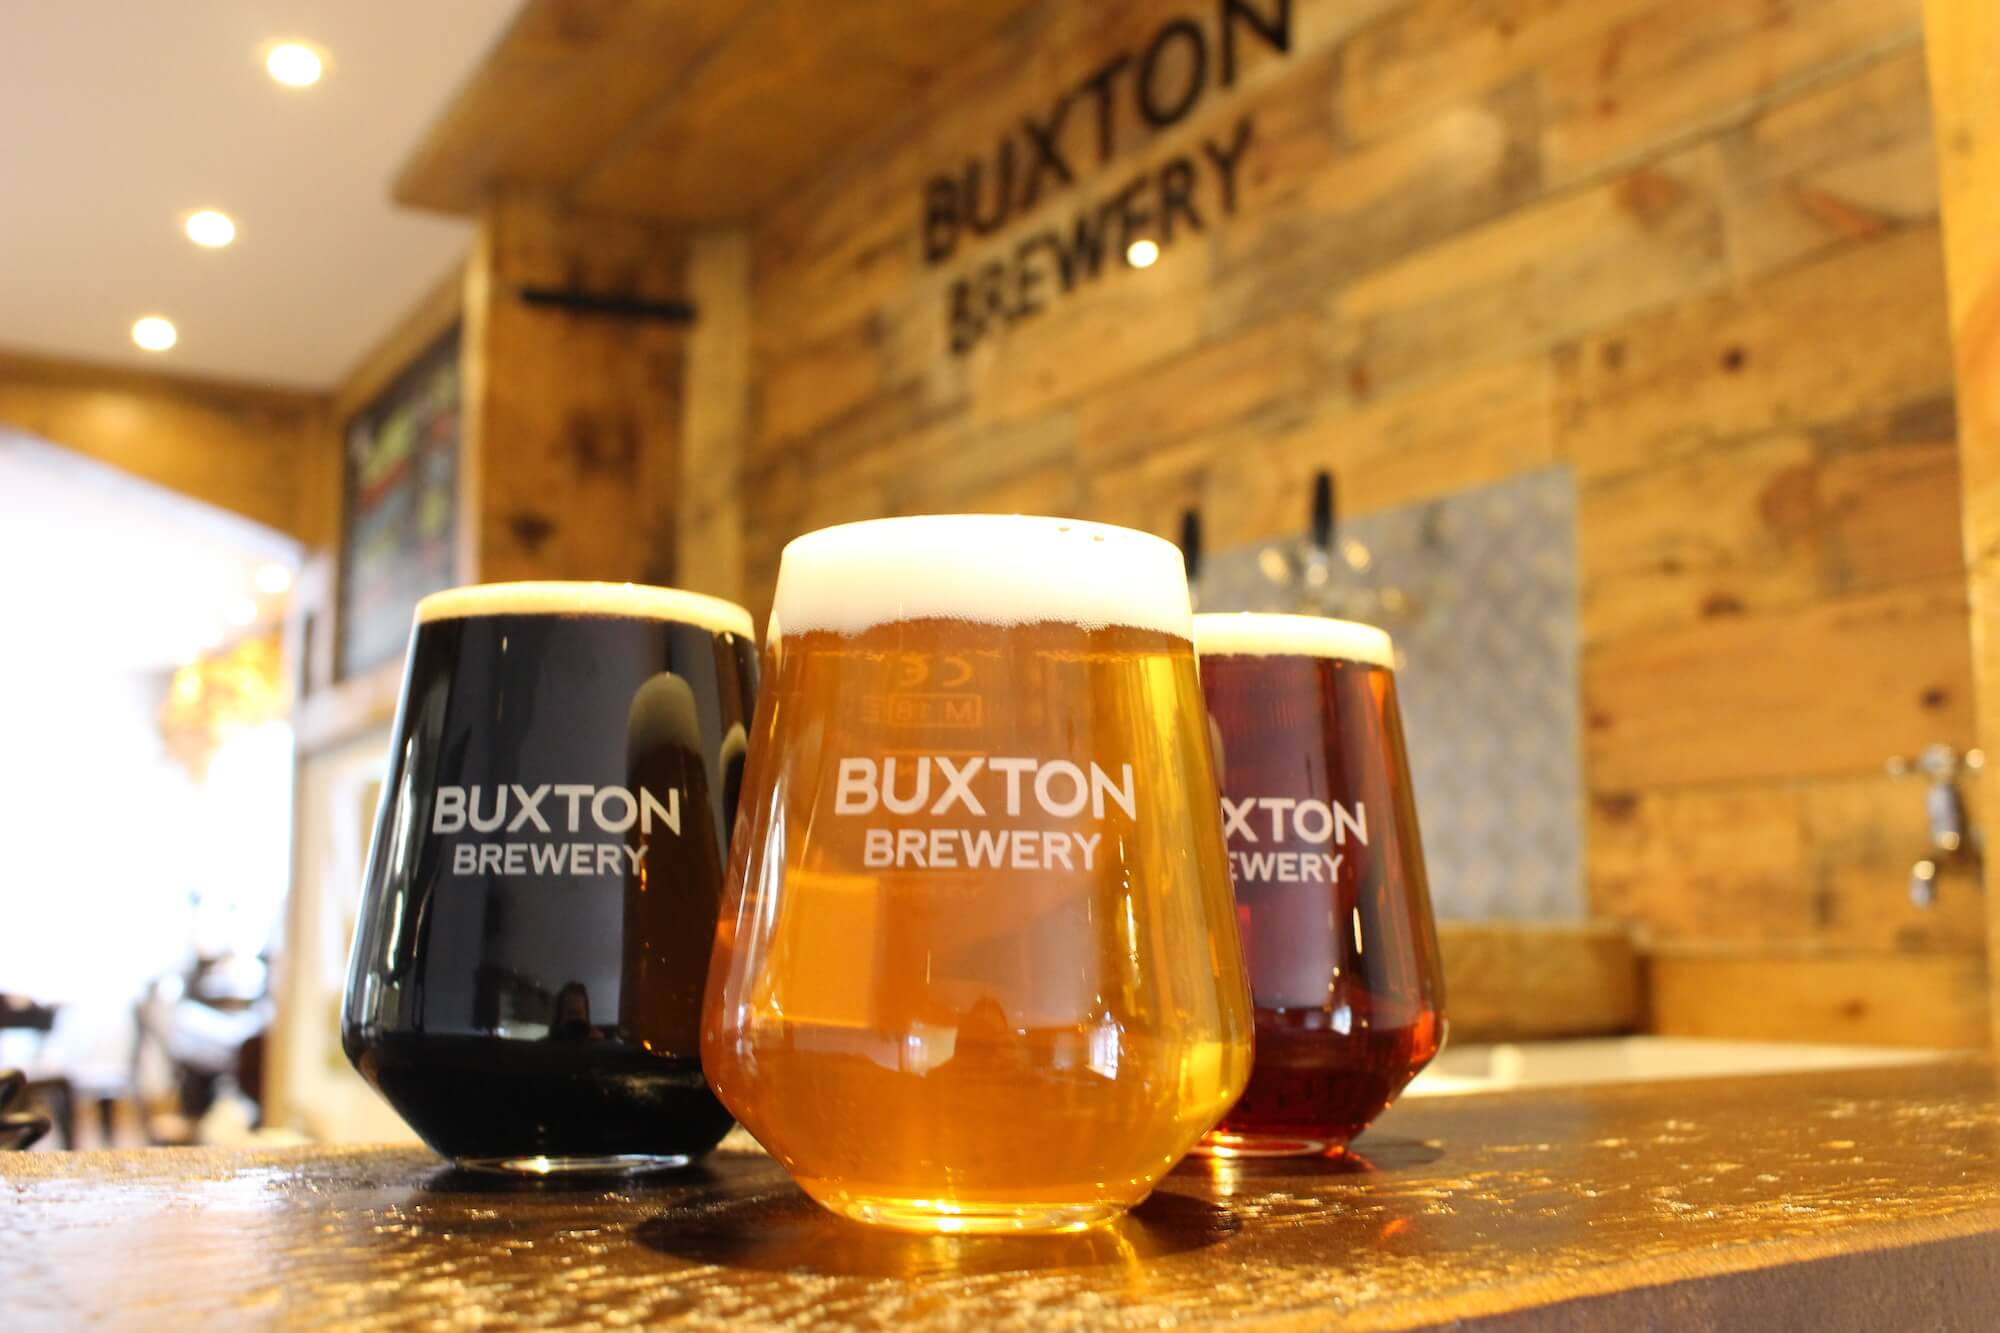 Buxton Brewery Taphouse